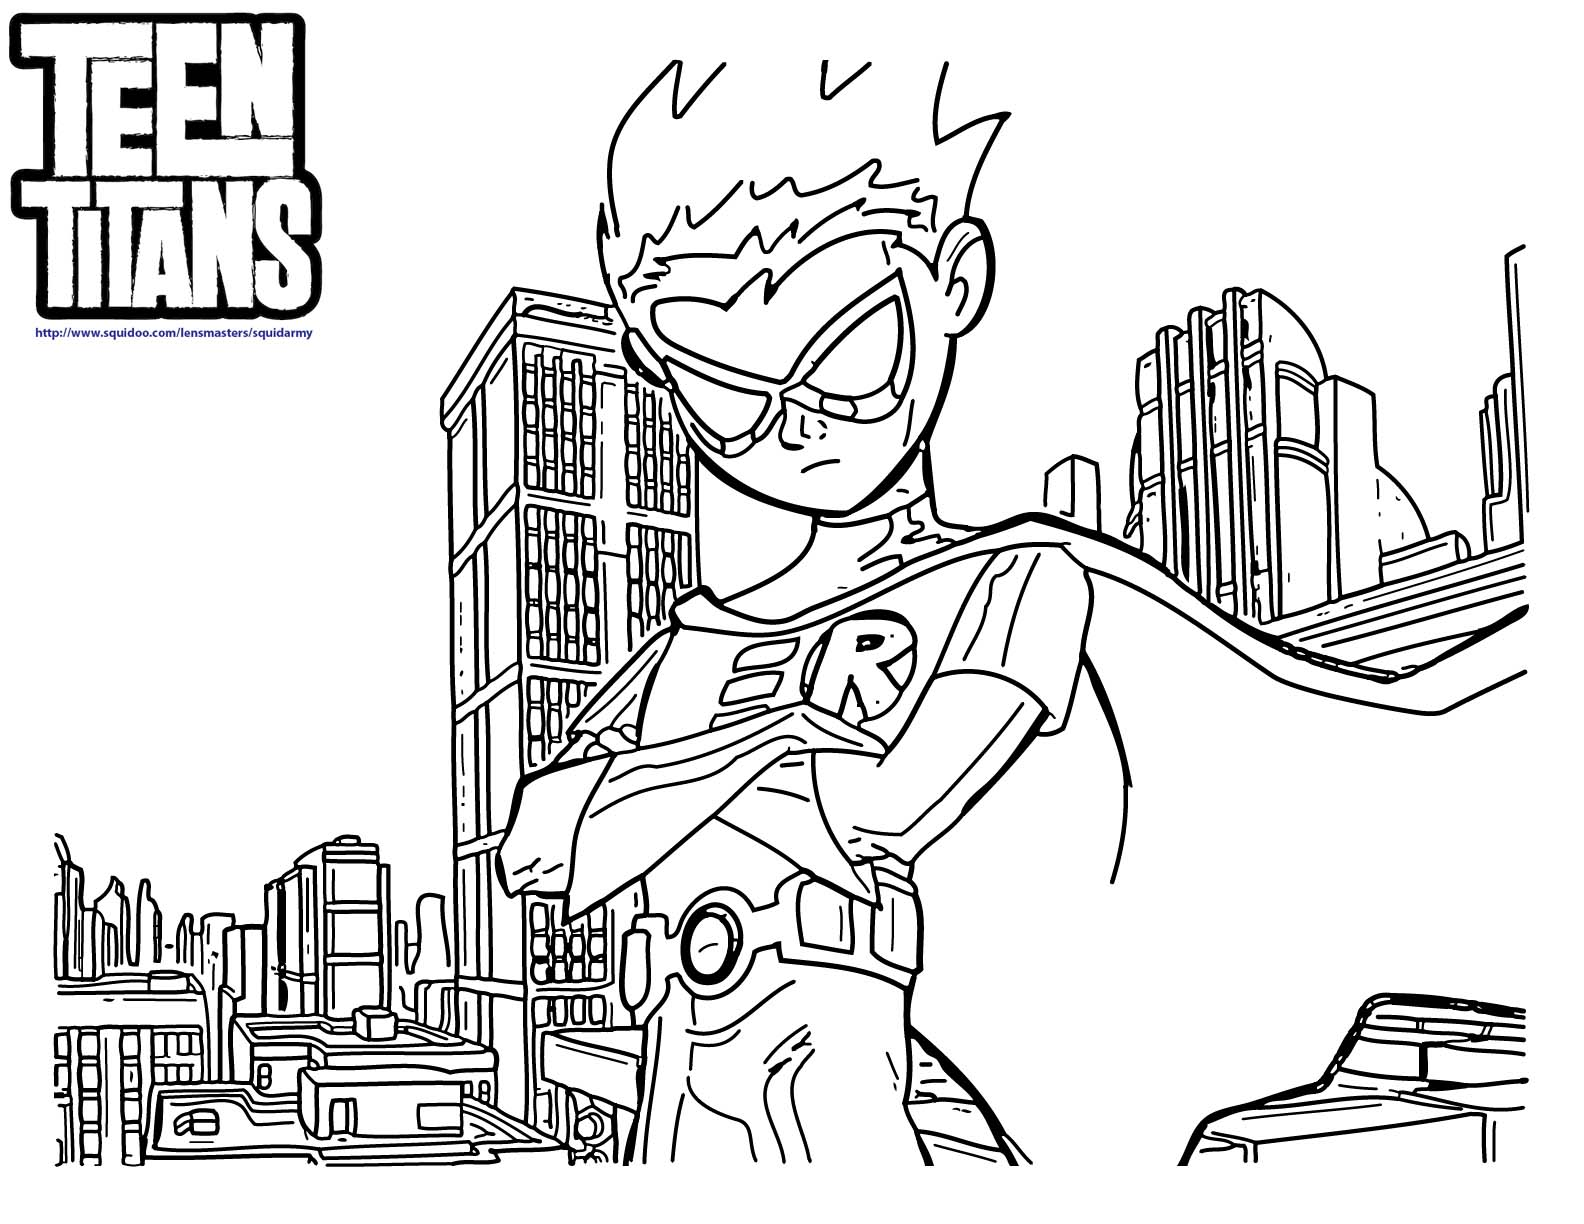 teen titans coloring pages teen titans coloring pages best coloring pages for kids coloring pages titans teen